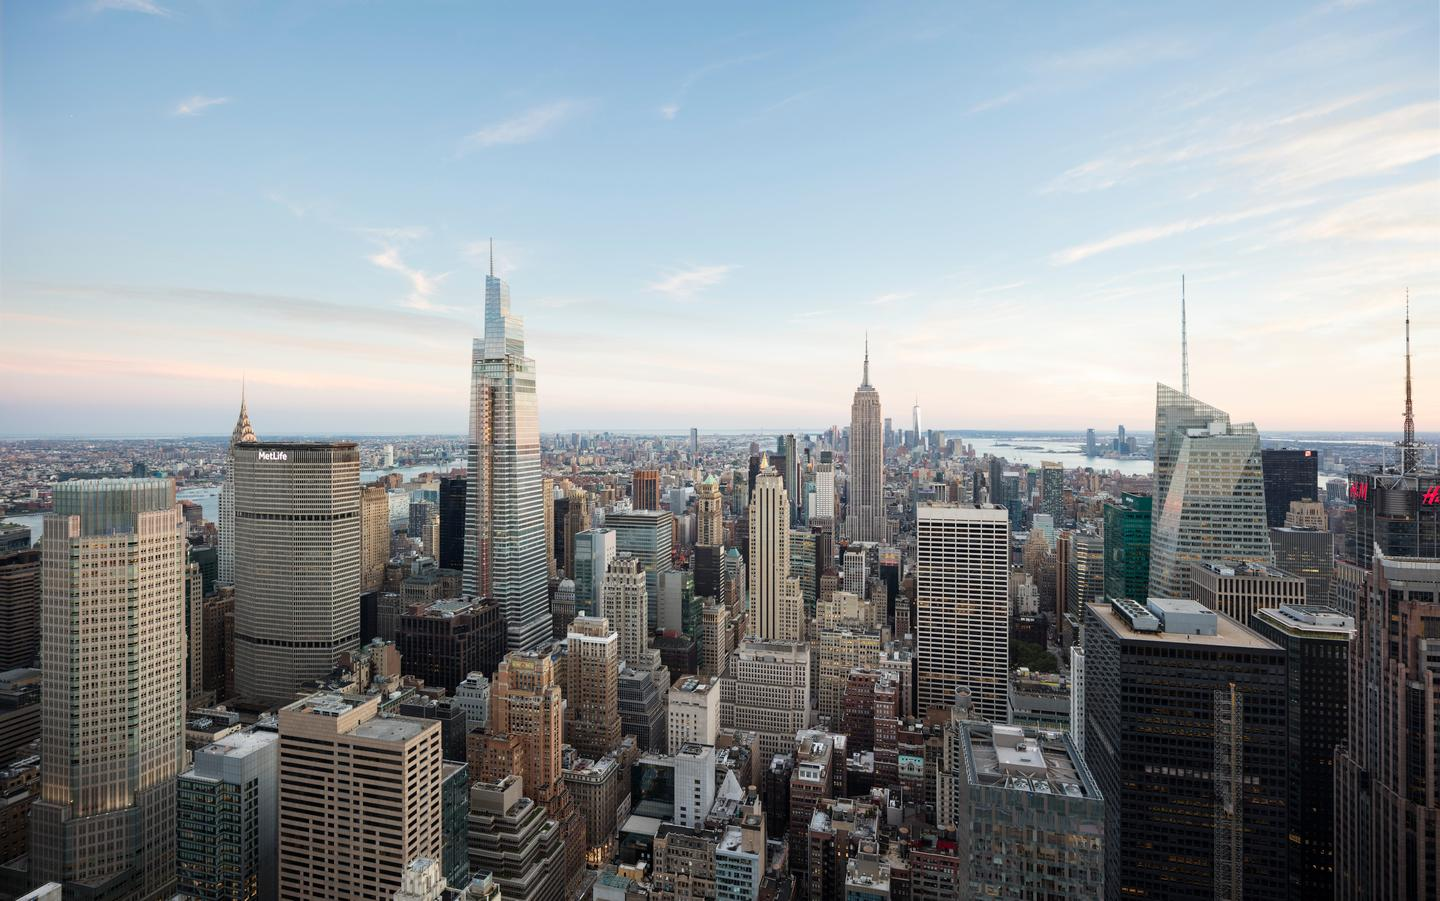 During One Vanderbilt's design, KPF drew inspiration from iconic towers like the Chrysler Building and Empire State Building